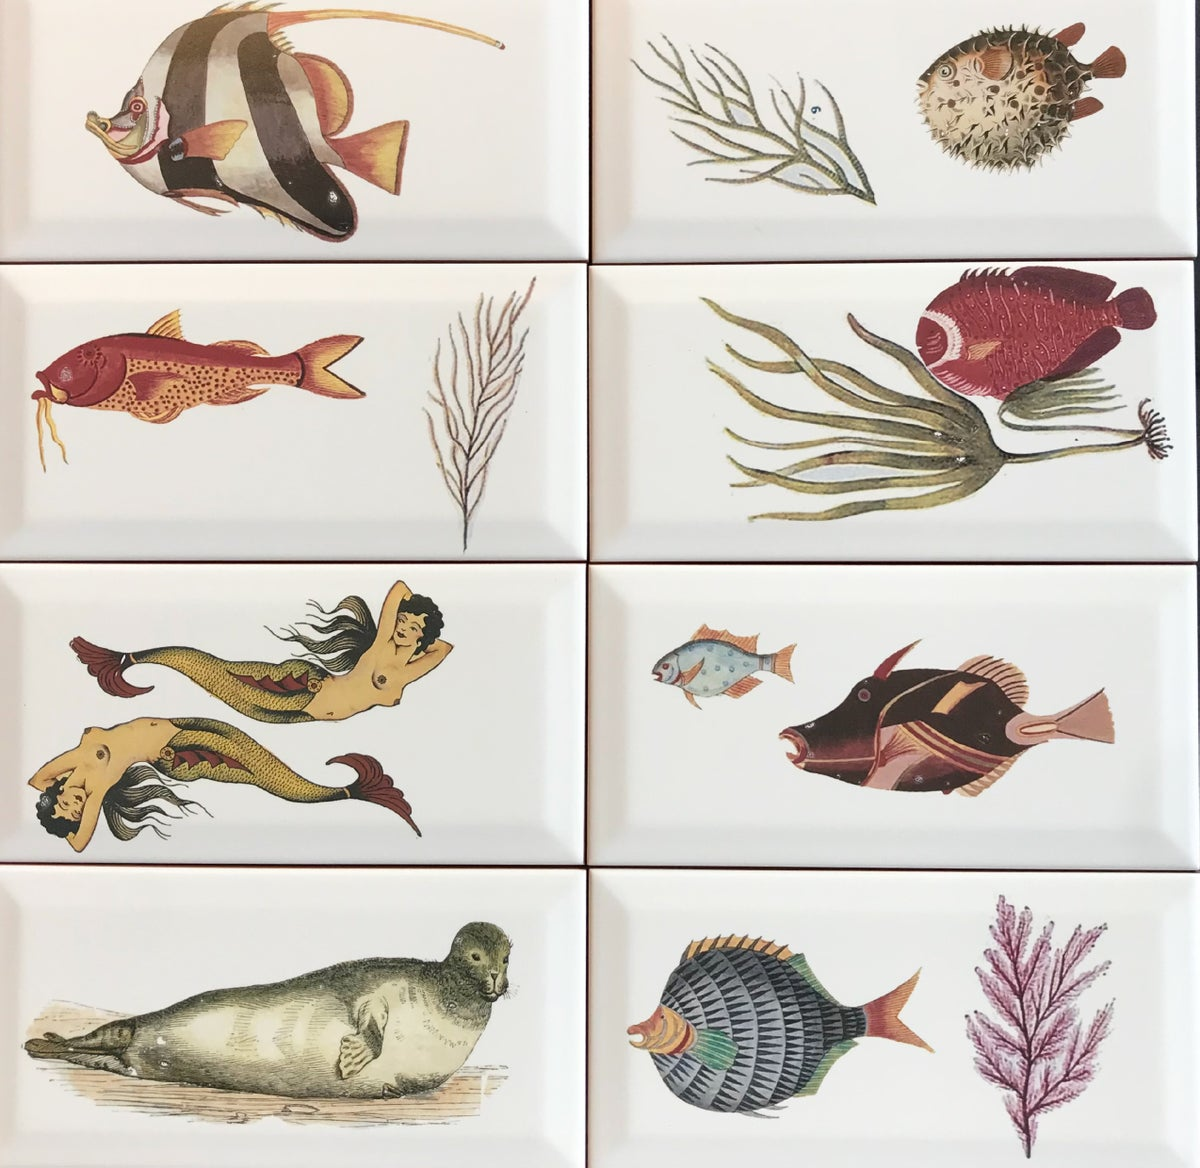 Group of Fishy Tiles